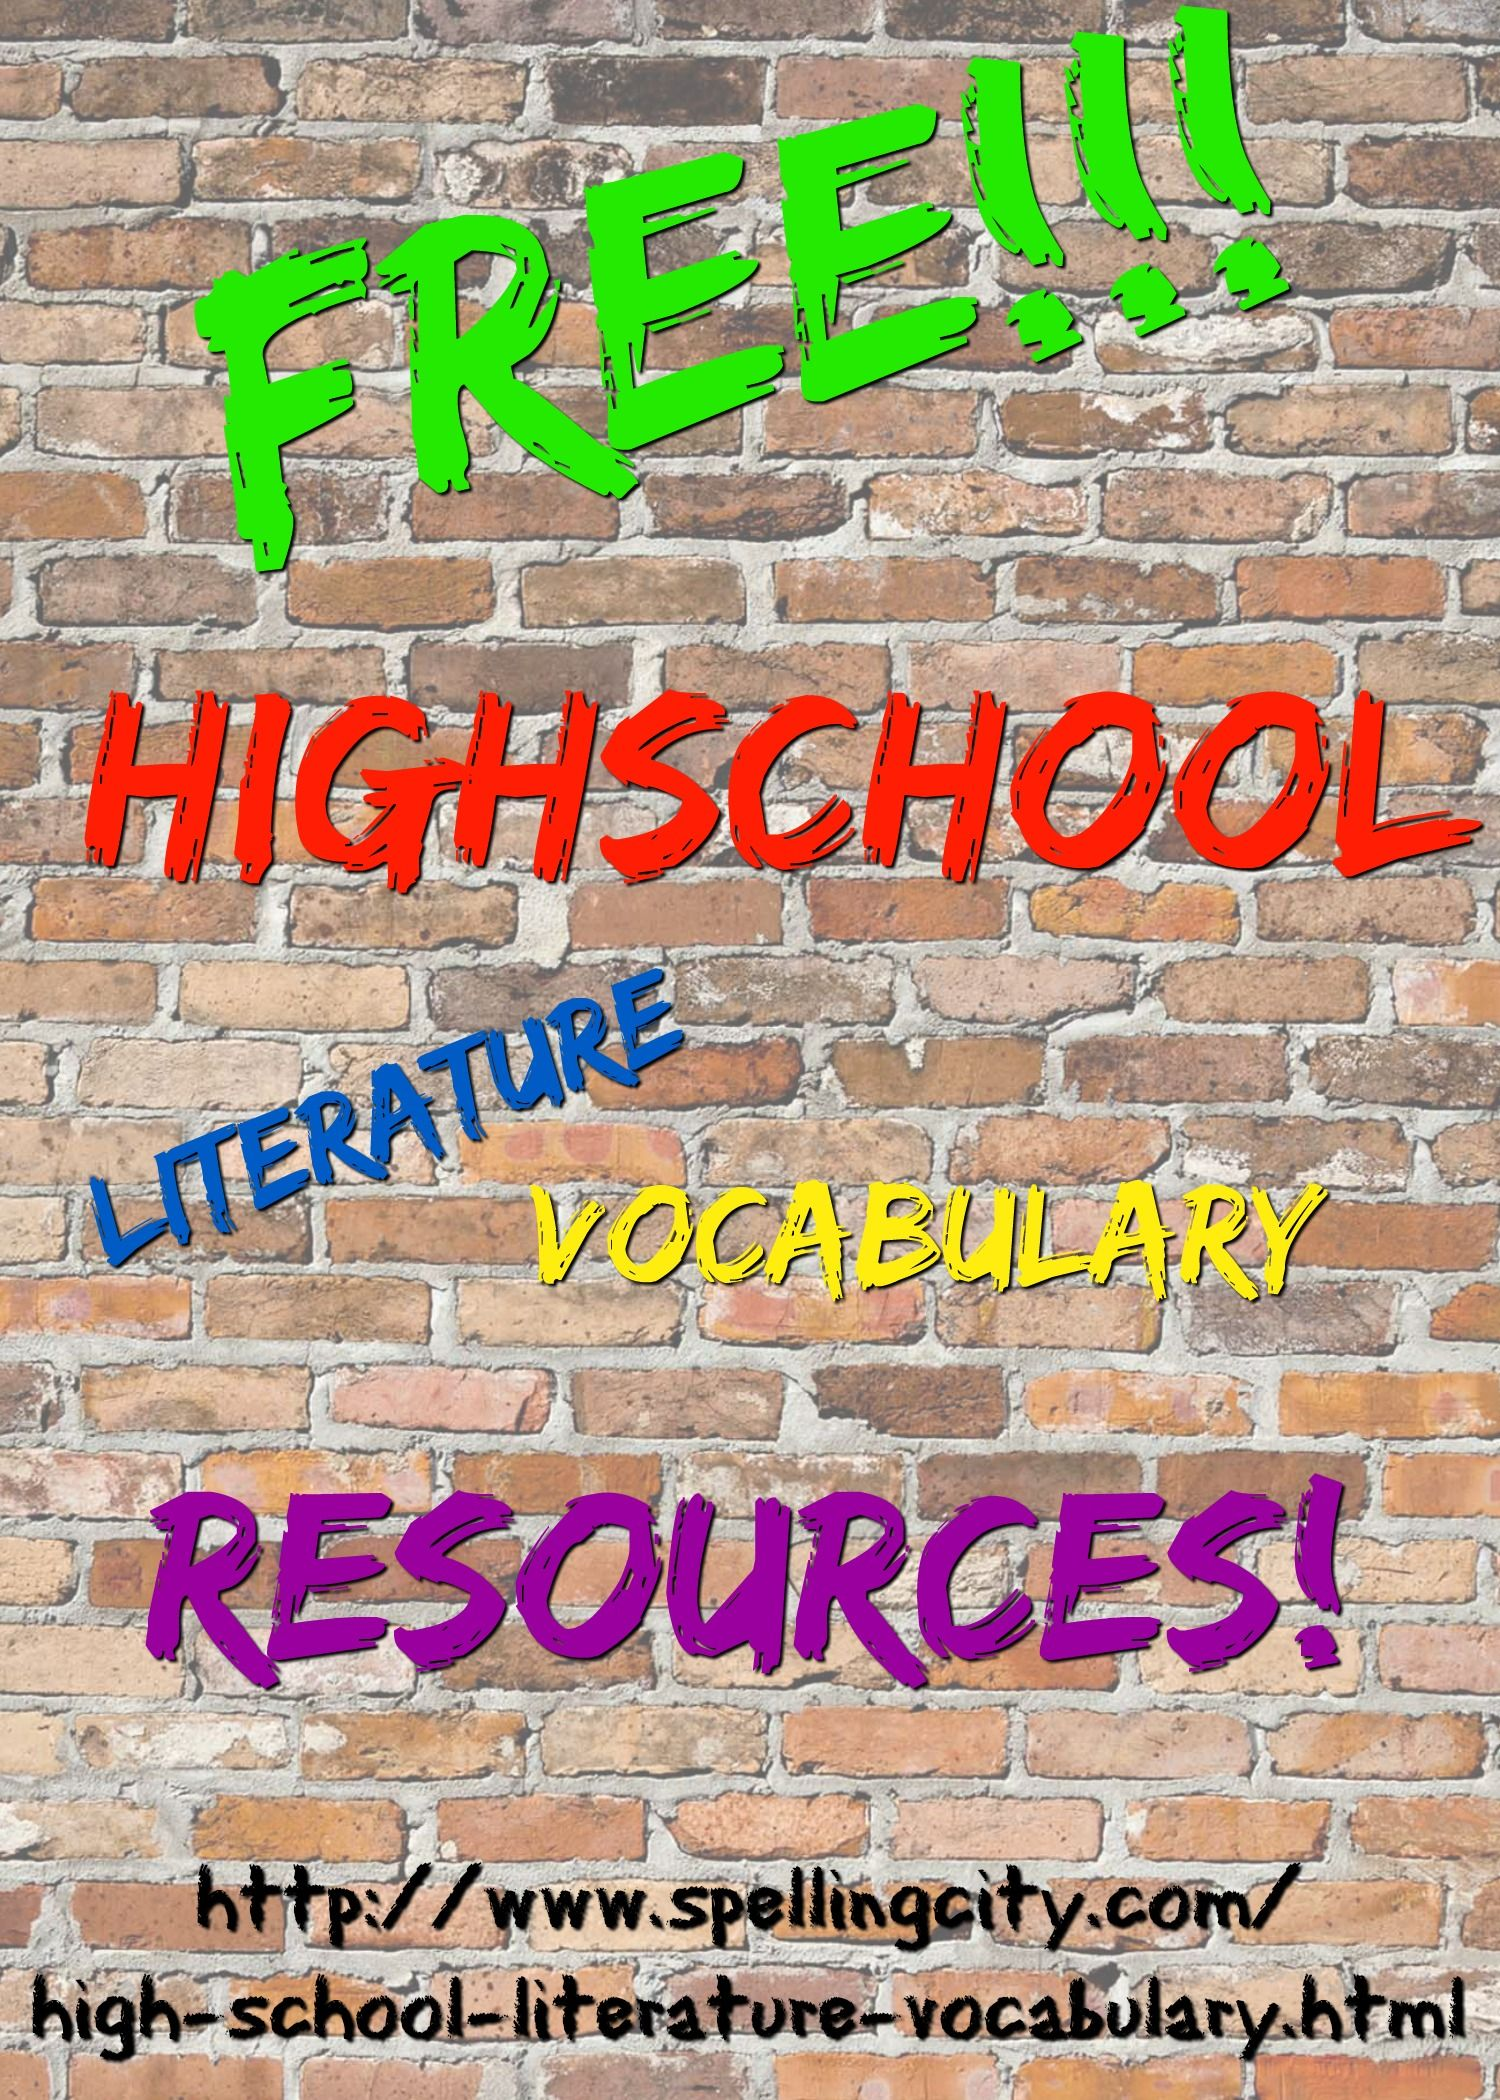 Vocabularyspellingcity promotes high school vocabulary learning and comprehension while your students explore great literature